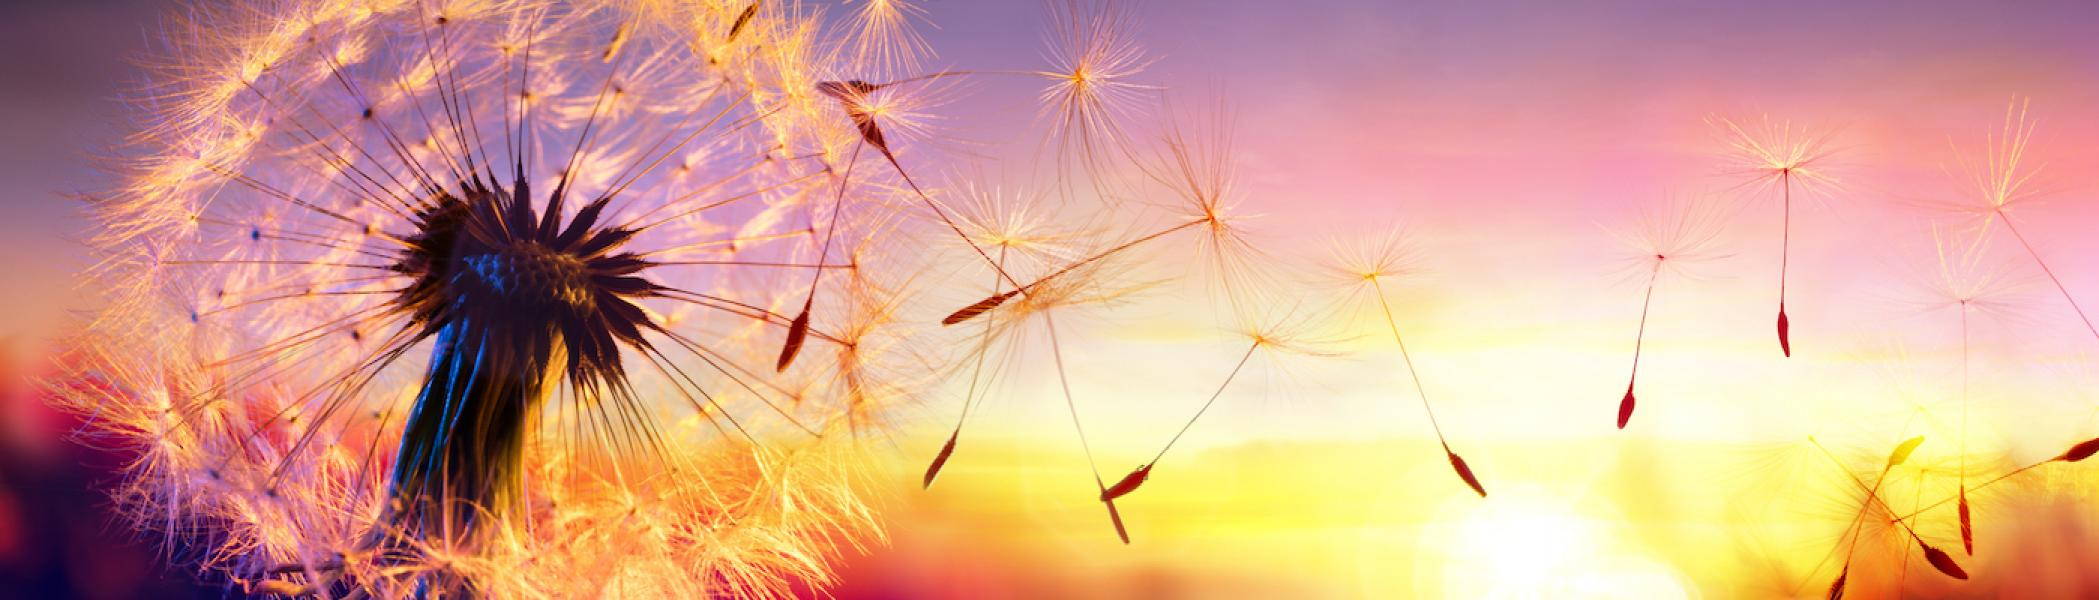 Dandelion blowing in the wind with a sunset in the background